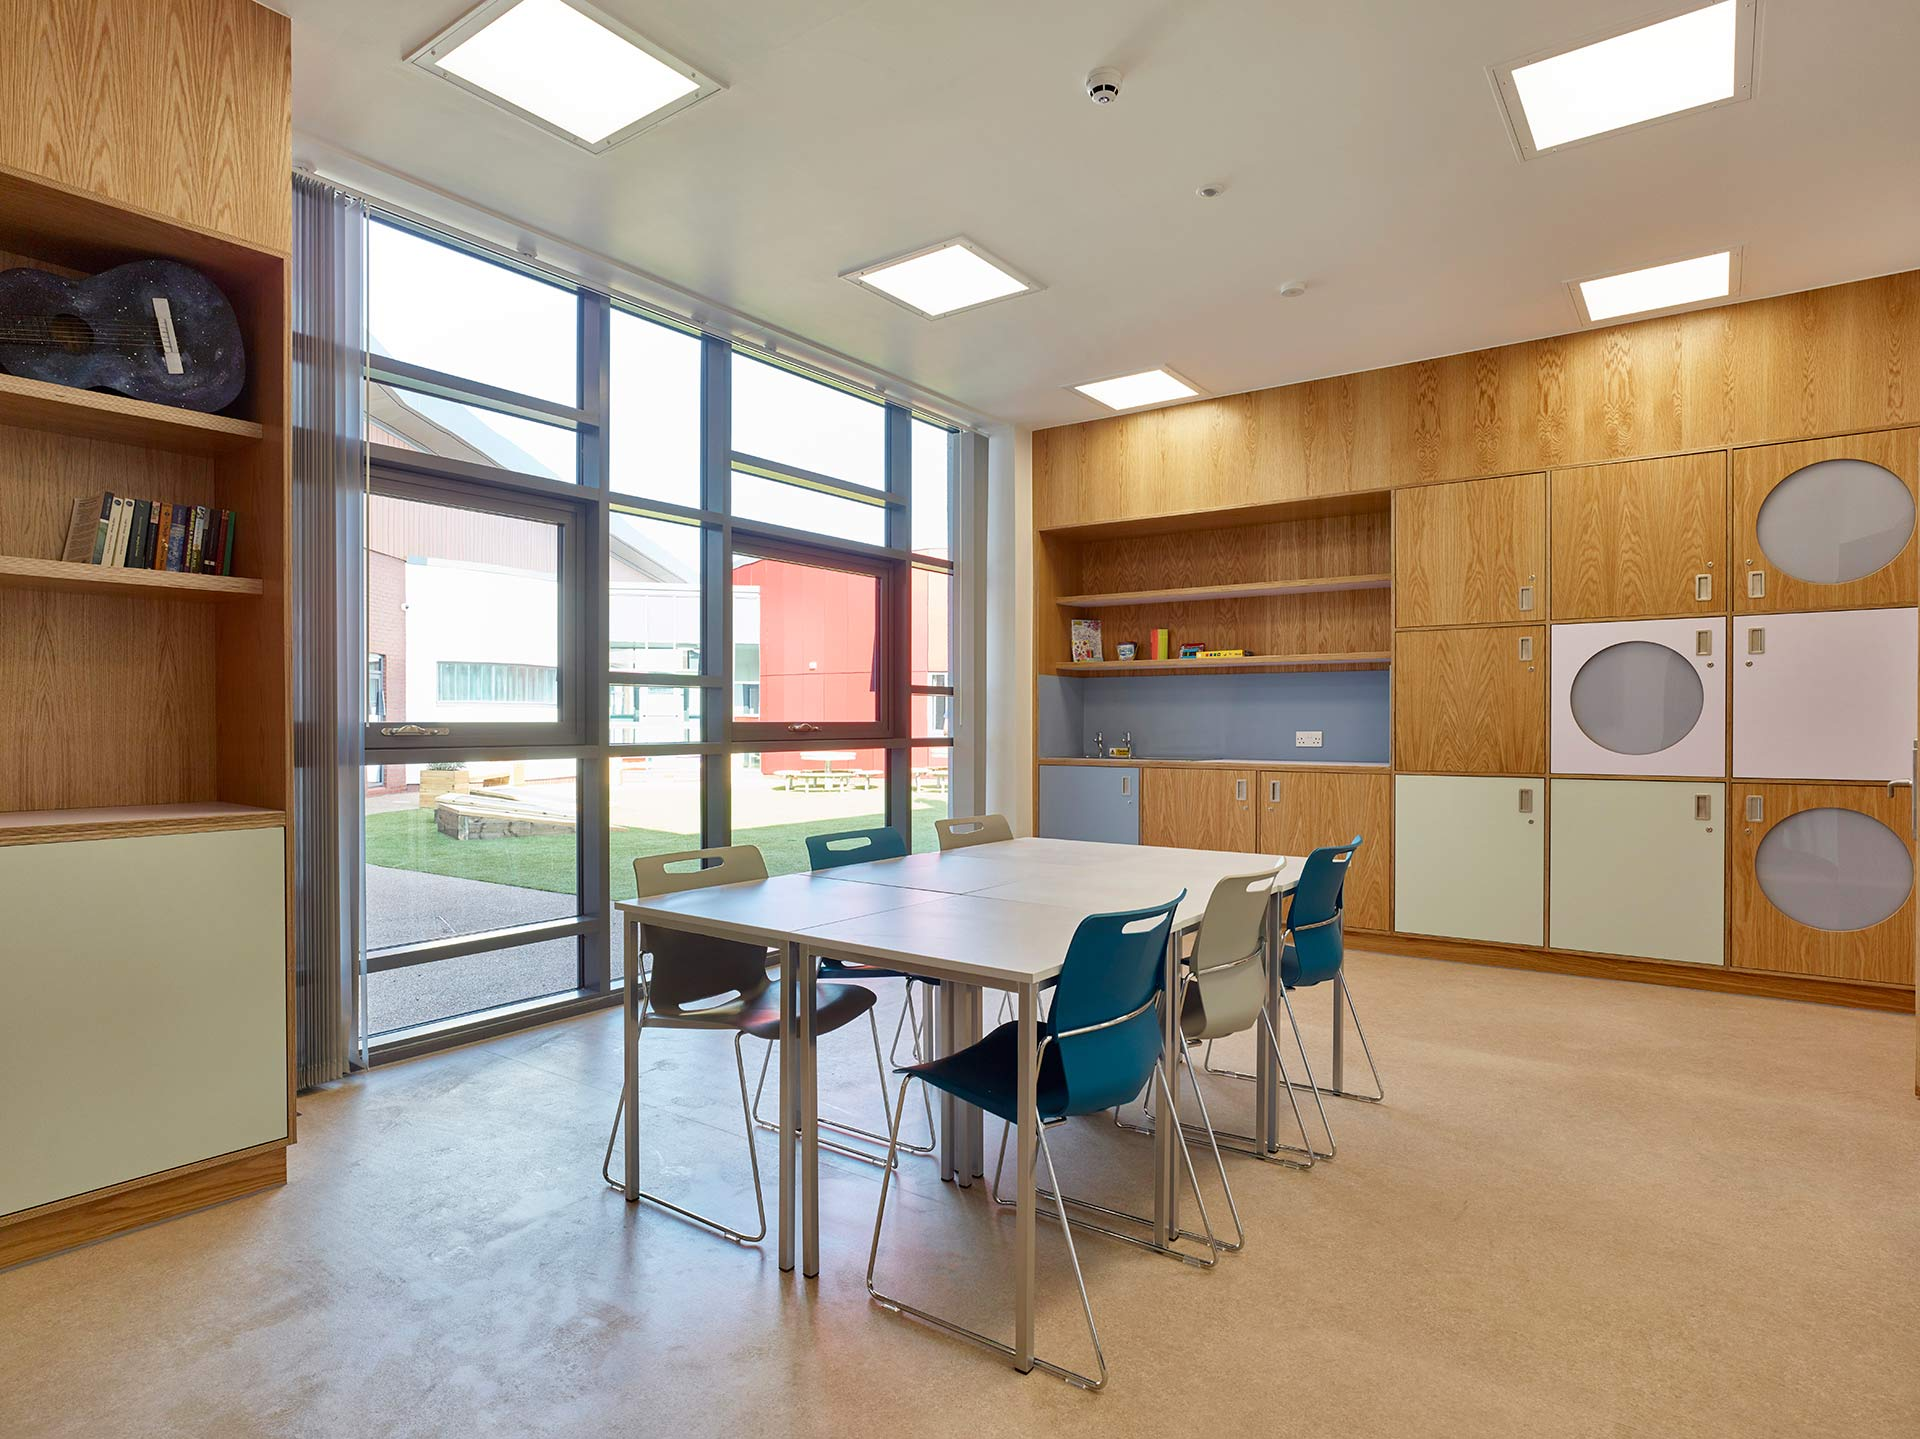 bespoke furniture designed by Boex for the education room